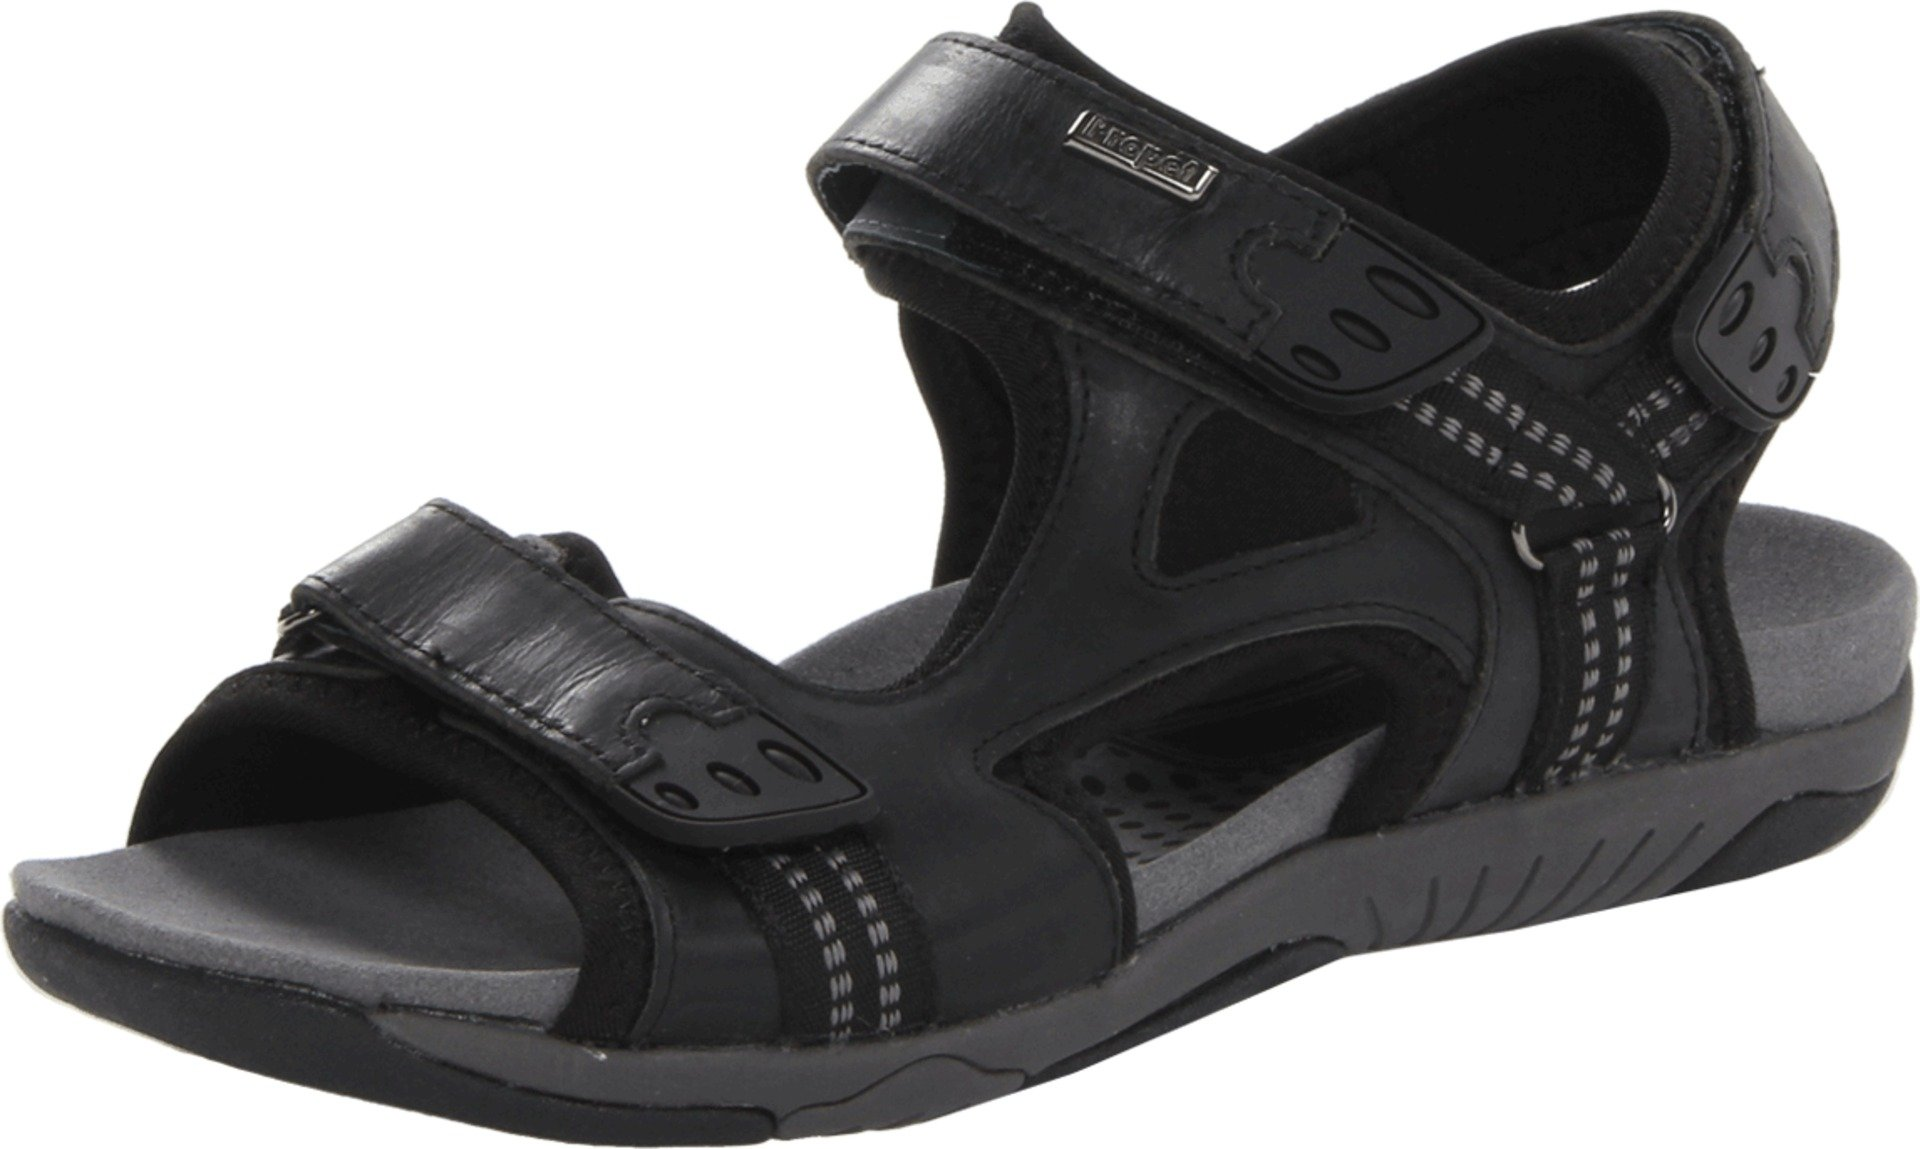 Propet Men's Anderson Sandal,Black/Grey,14 M US